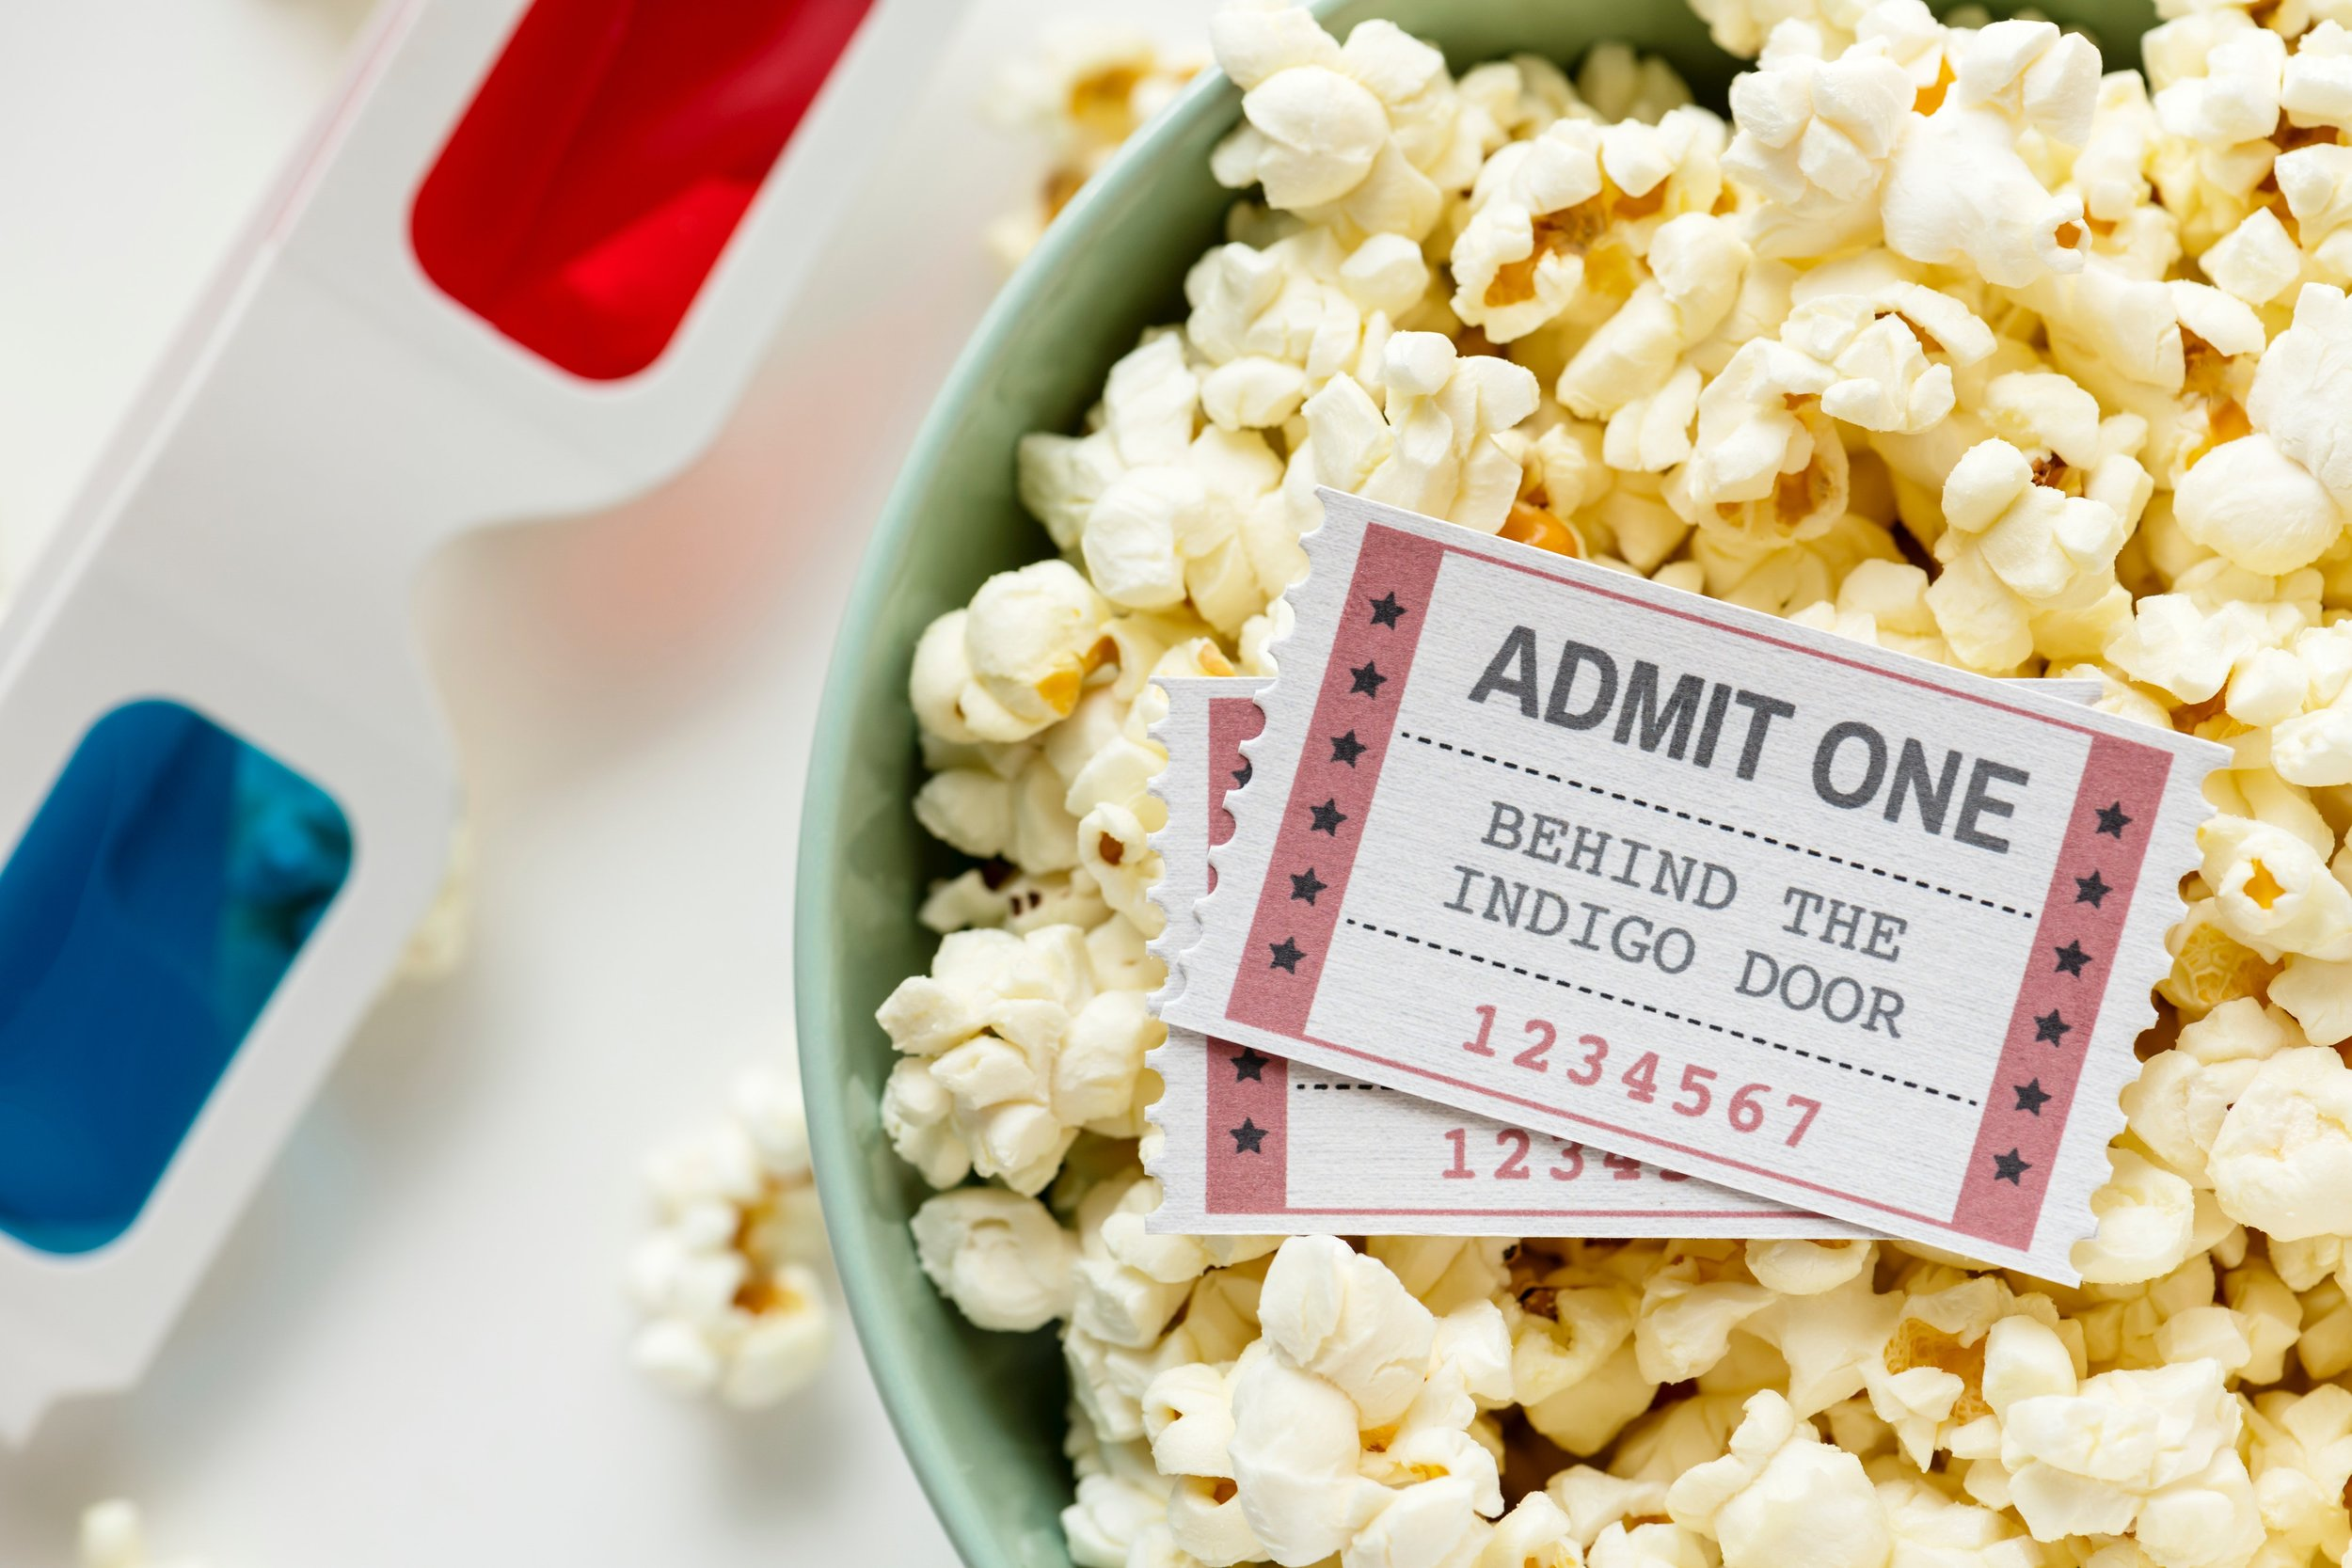 Watching movies.  This is a bit simple but staying positive while watching the trailer will make you enjoy the movie when it comes out. How do you stay positive while watching the trailer? By having the popcorn ready already.